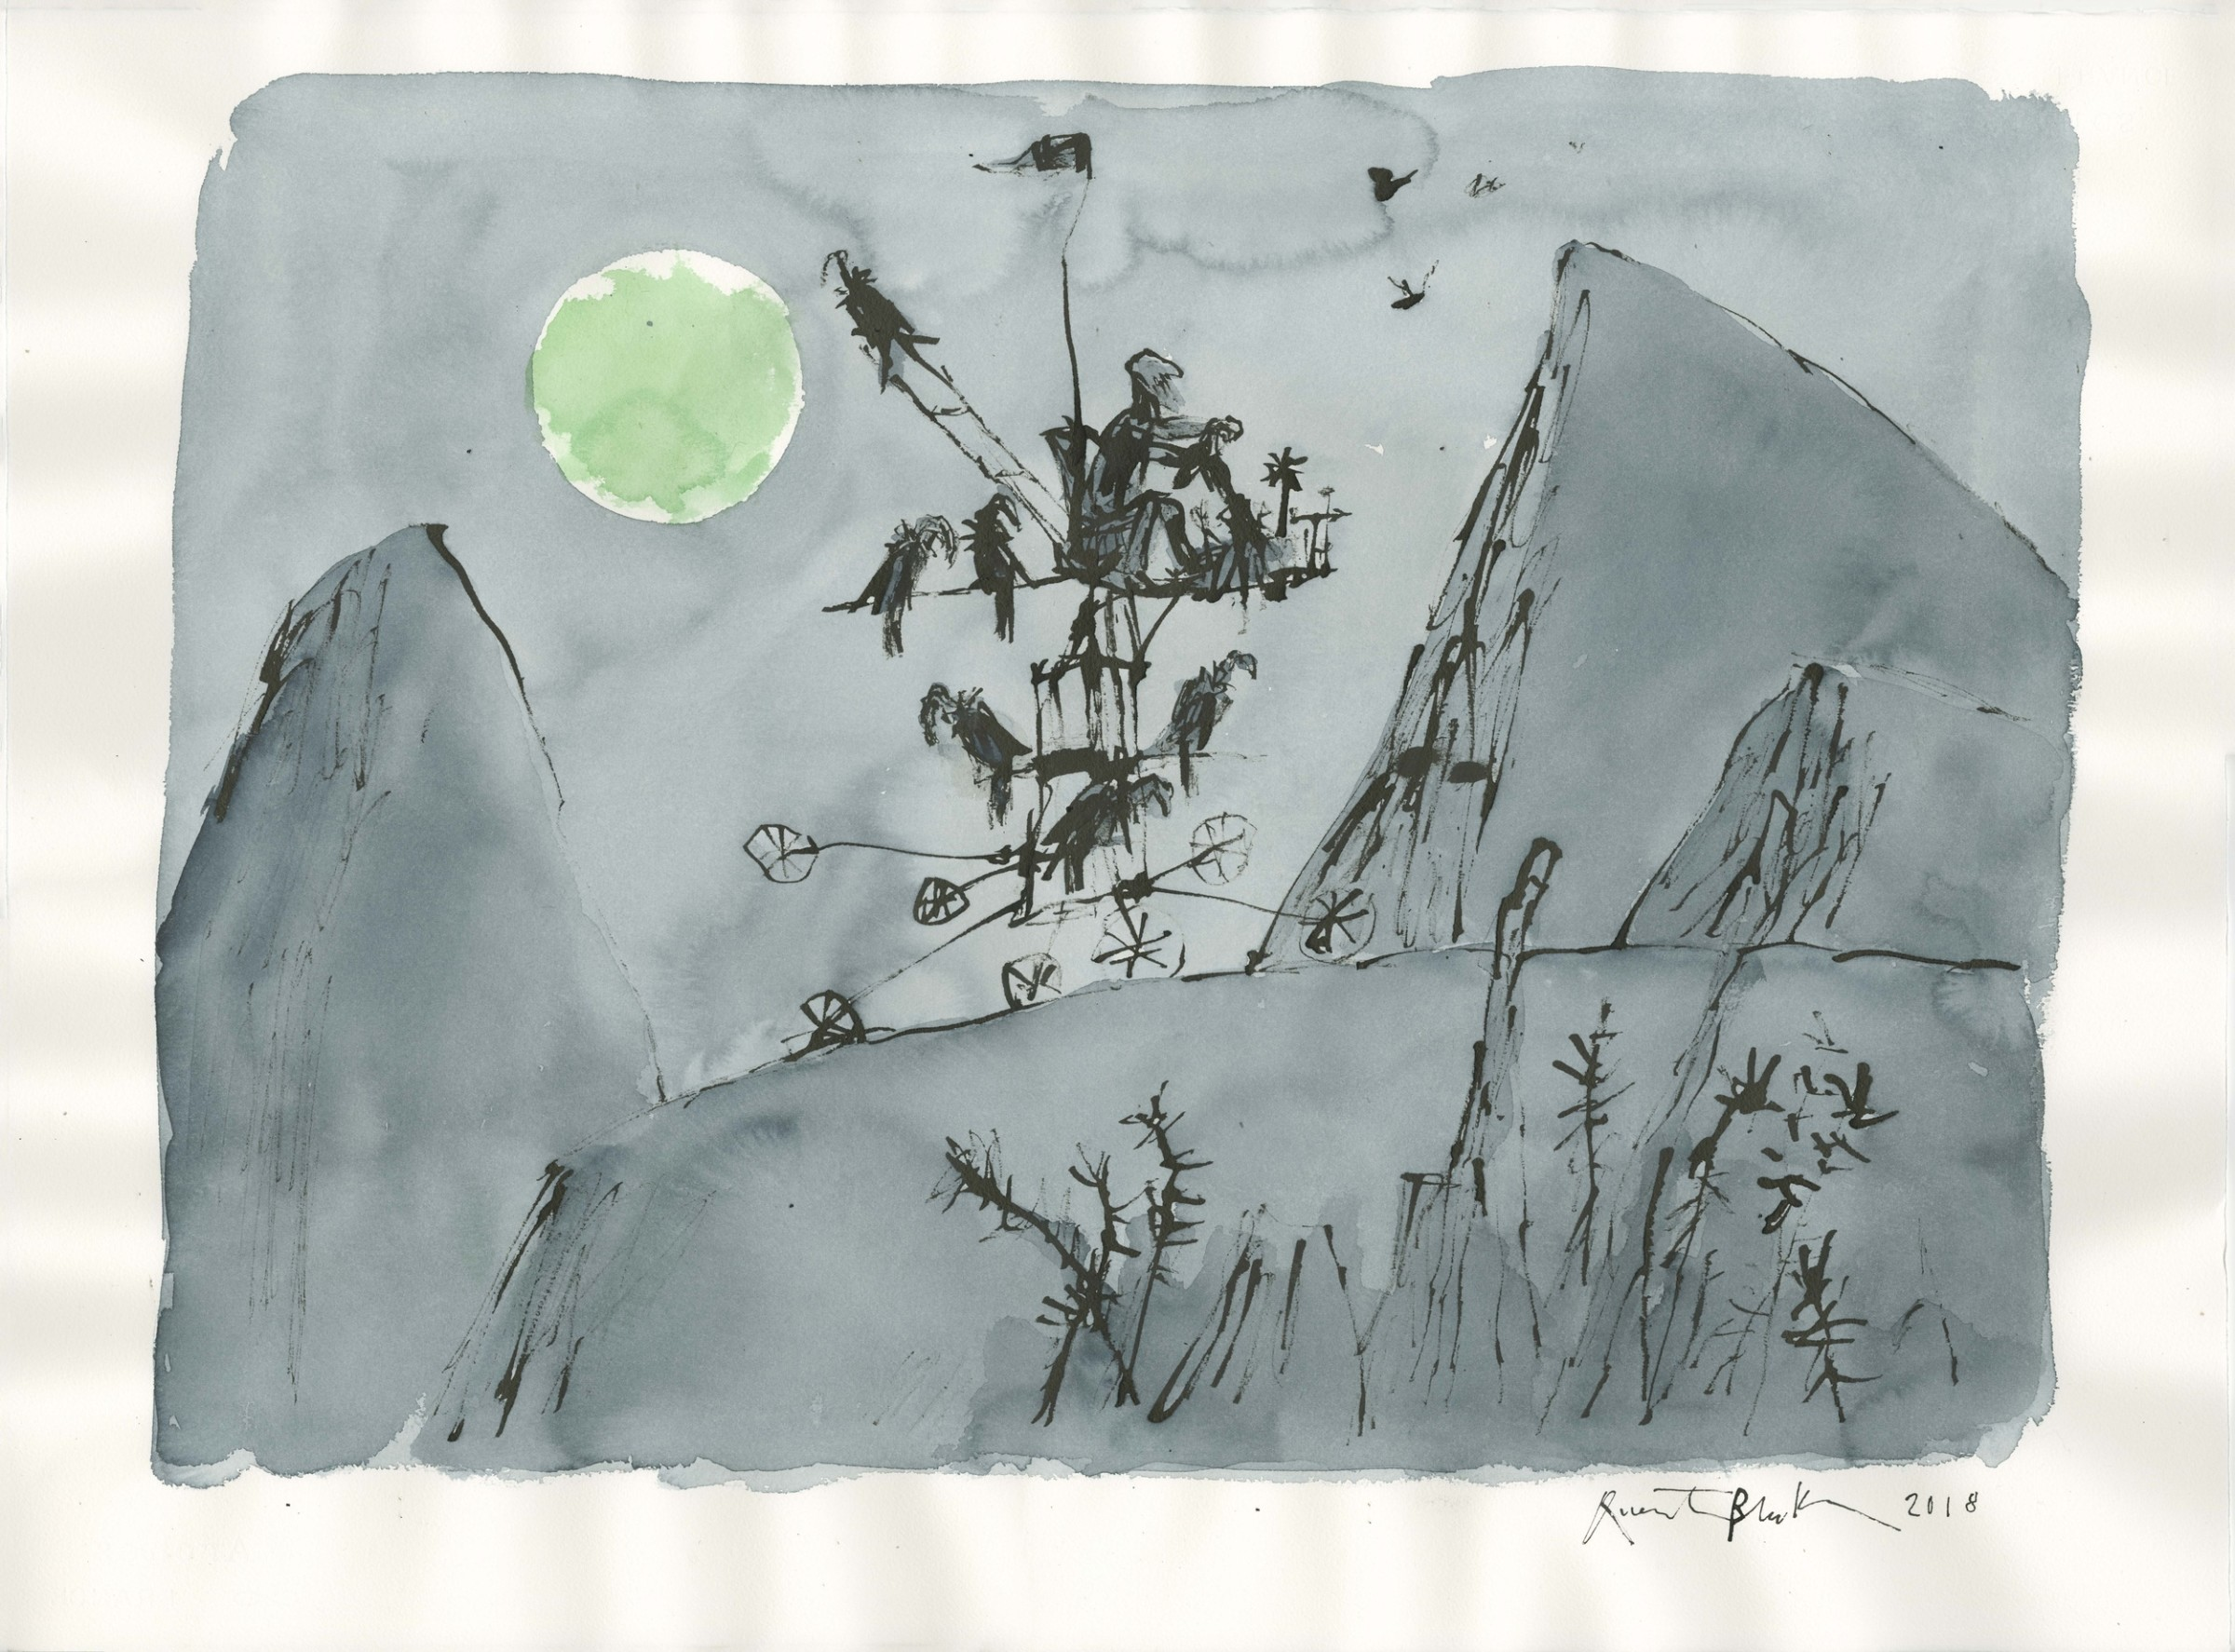 """<span class=""""link fancybox-details-link""""><a href=""""/artists/164-quentin-blake/works/10691-quentin-blake-the-moonlight-traveller/"""">View Detail Page</a></span><div class=""""artist""""><span class=""""artist""""><strong>Quentin Blake</strong></span></div><div class=""""title""""><em>The Moonlight Traveller</em></div><div class=""""medium"""">watercolour & indian ink</div><div class=""""dimensions"""">70 x 90cm</div><div class=""""price"""">£3,500.00</div>"""